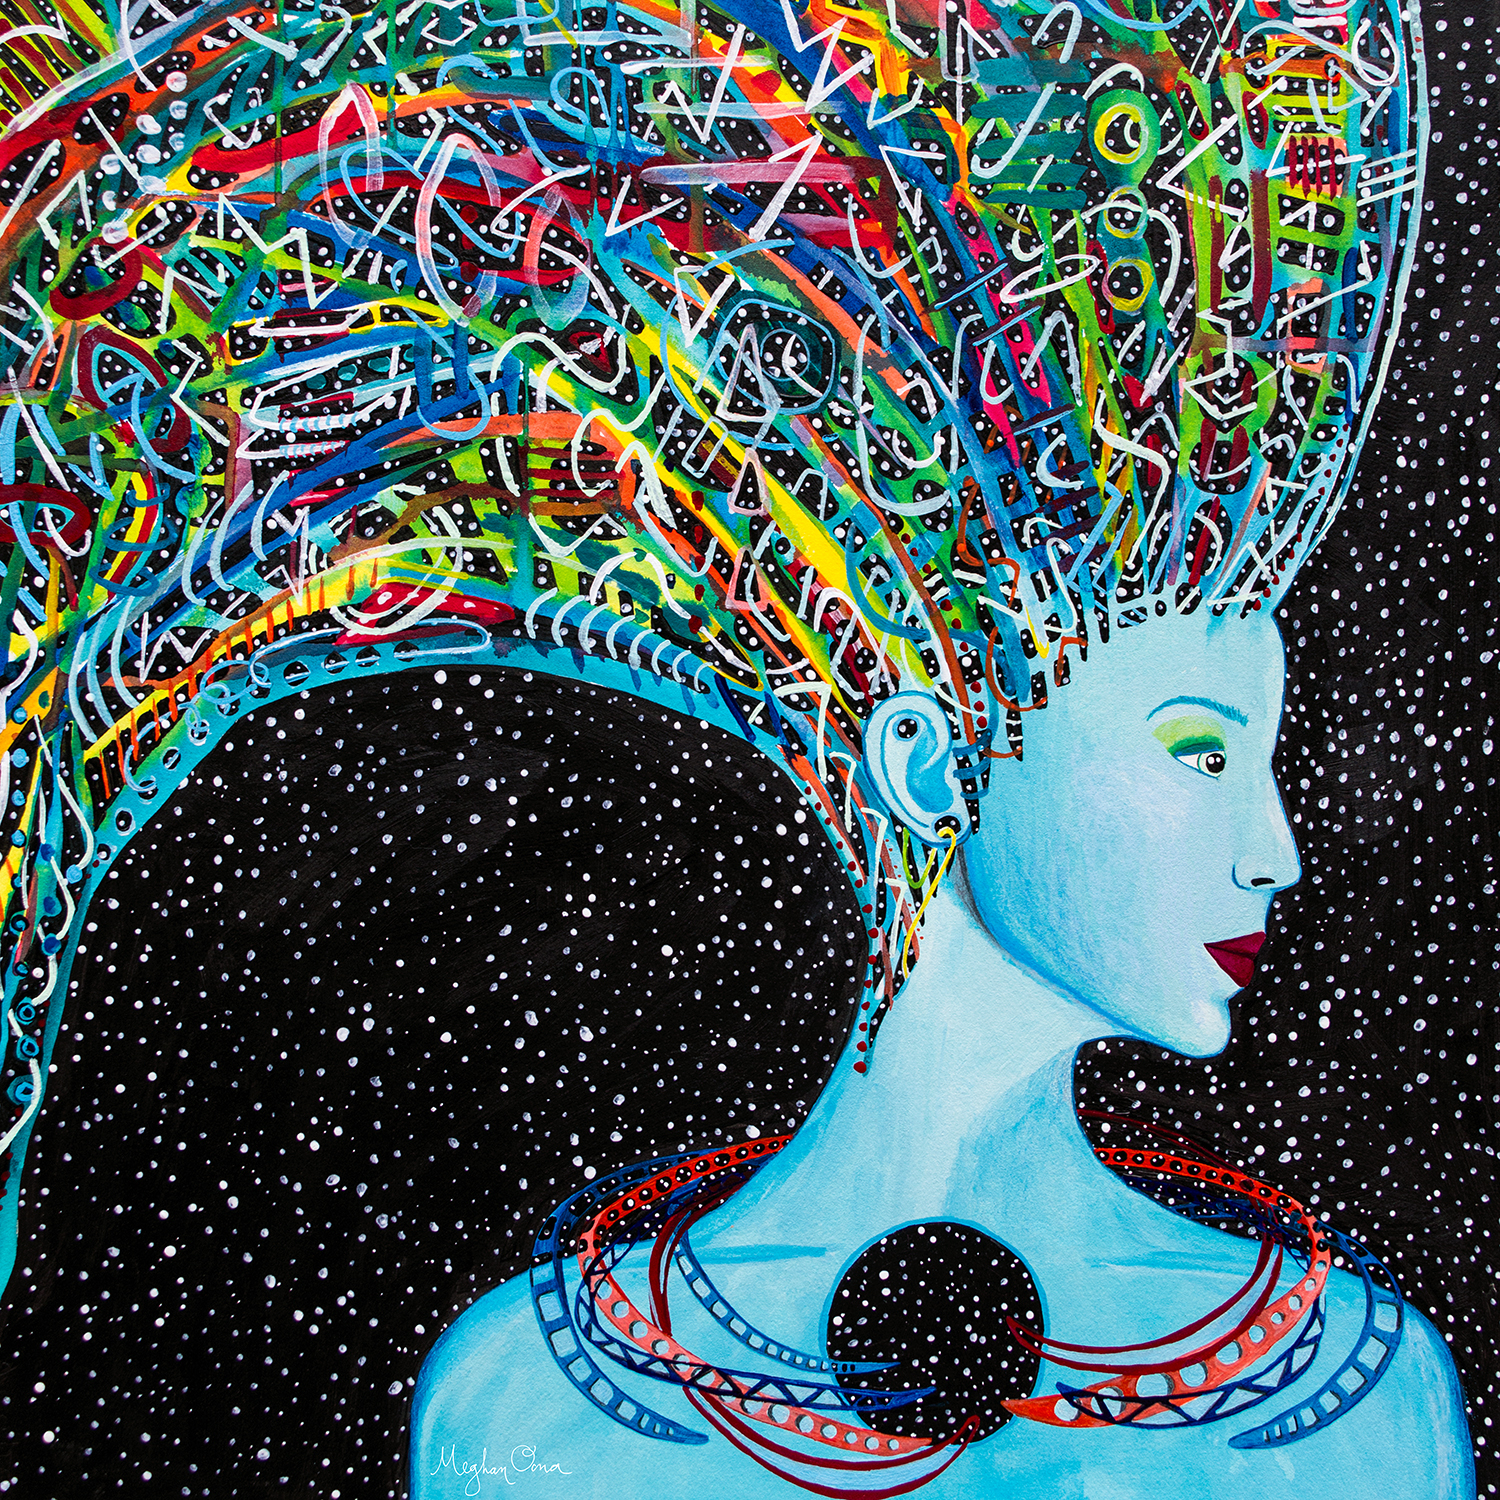 blue feminine being with large colorful hair wearing abstract necklaces surrounded by stars